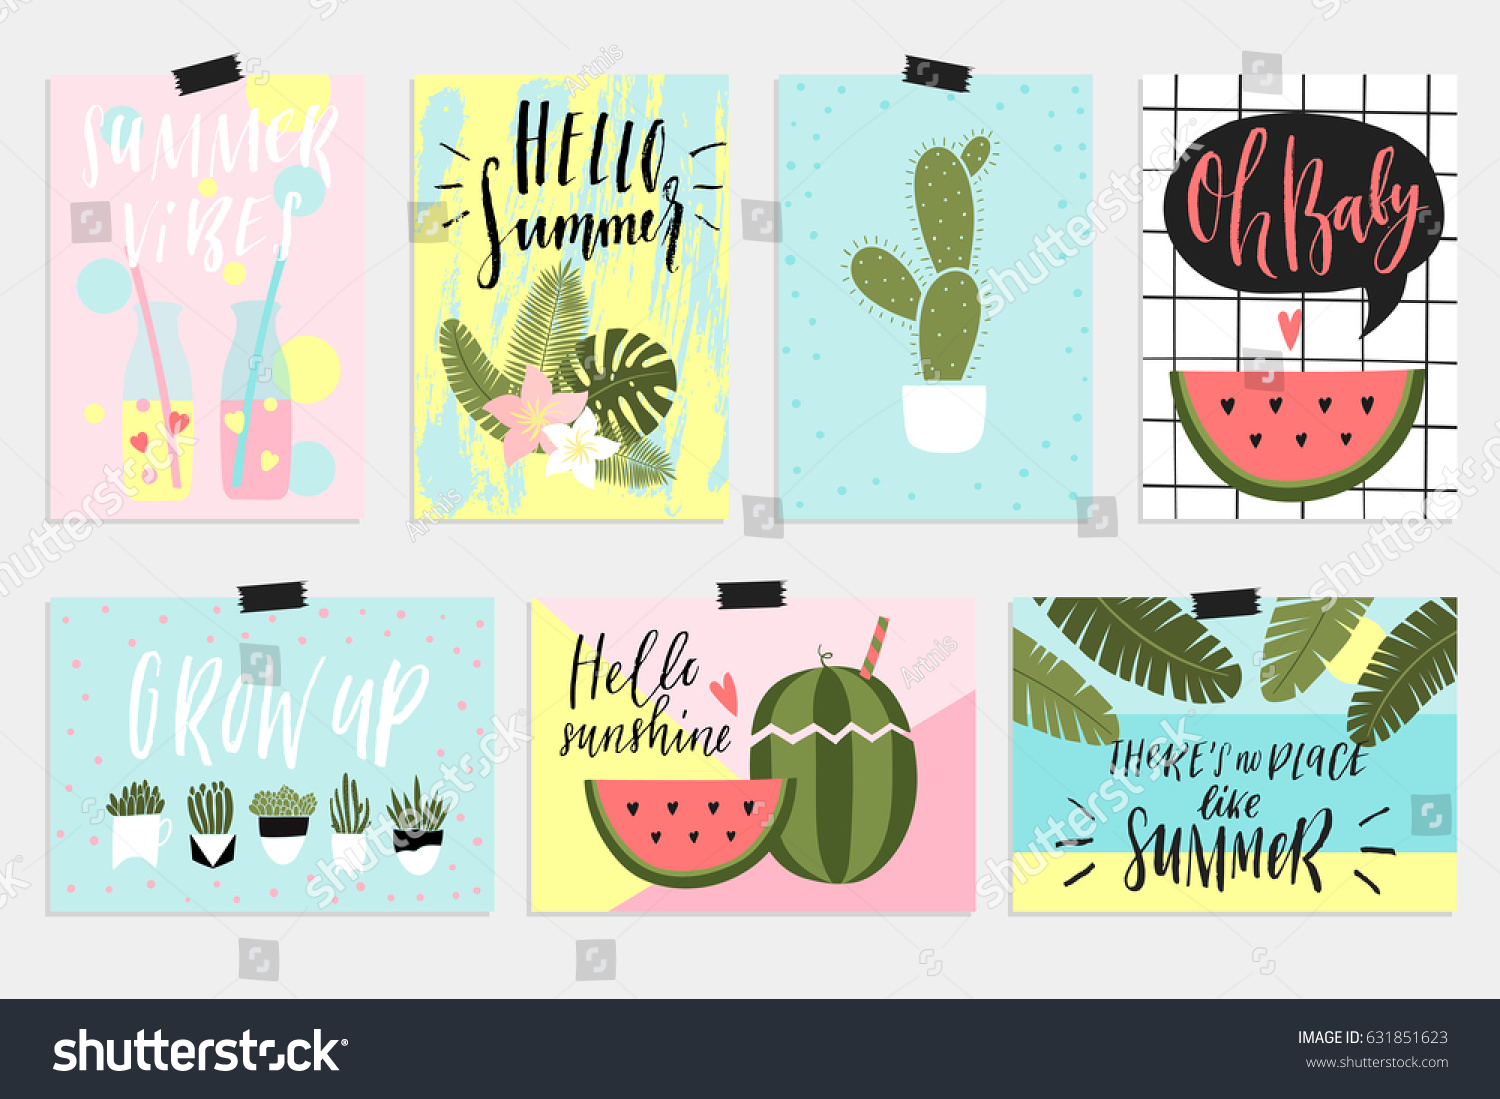 Summer Greeting Cards Posters Fun Elements Stock Vector Royalty Free 631851623